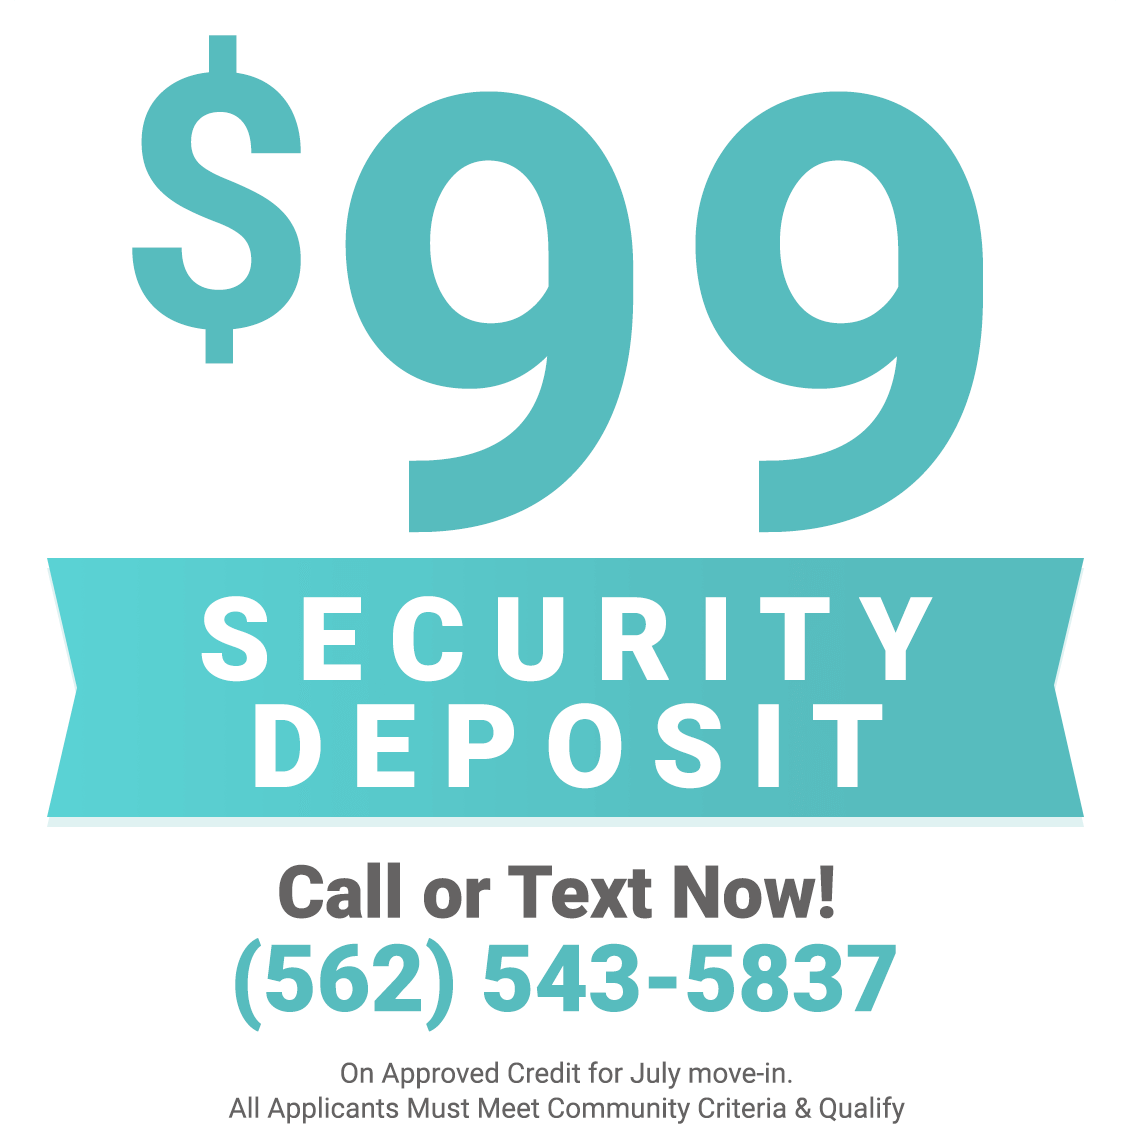 $99 Security Deposit On Approved Credit, for July Move In